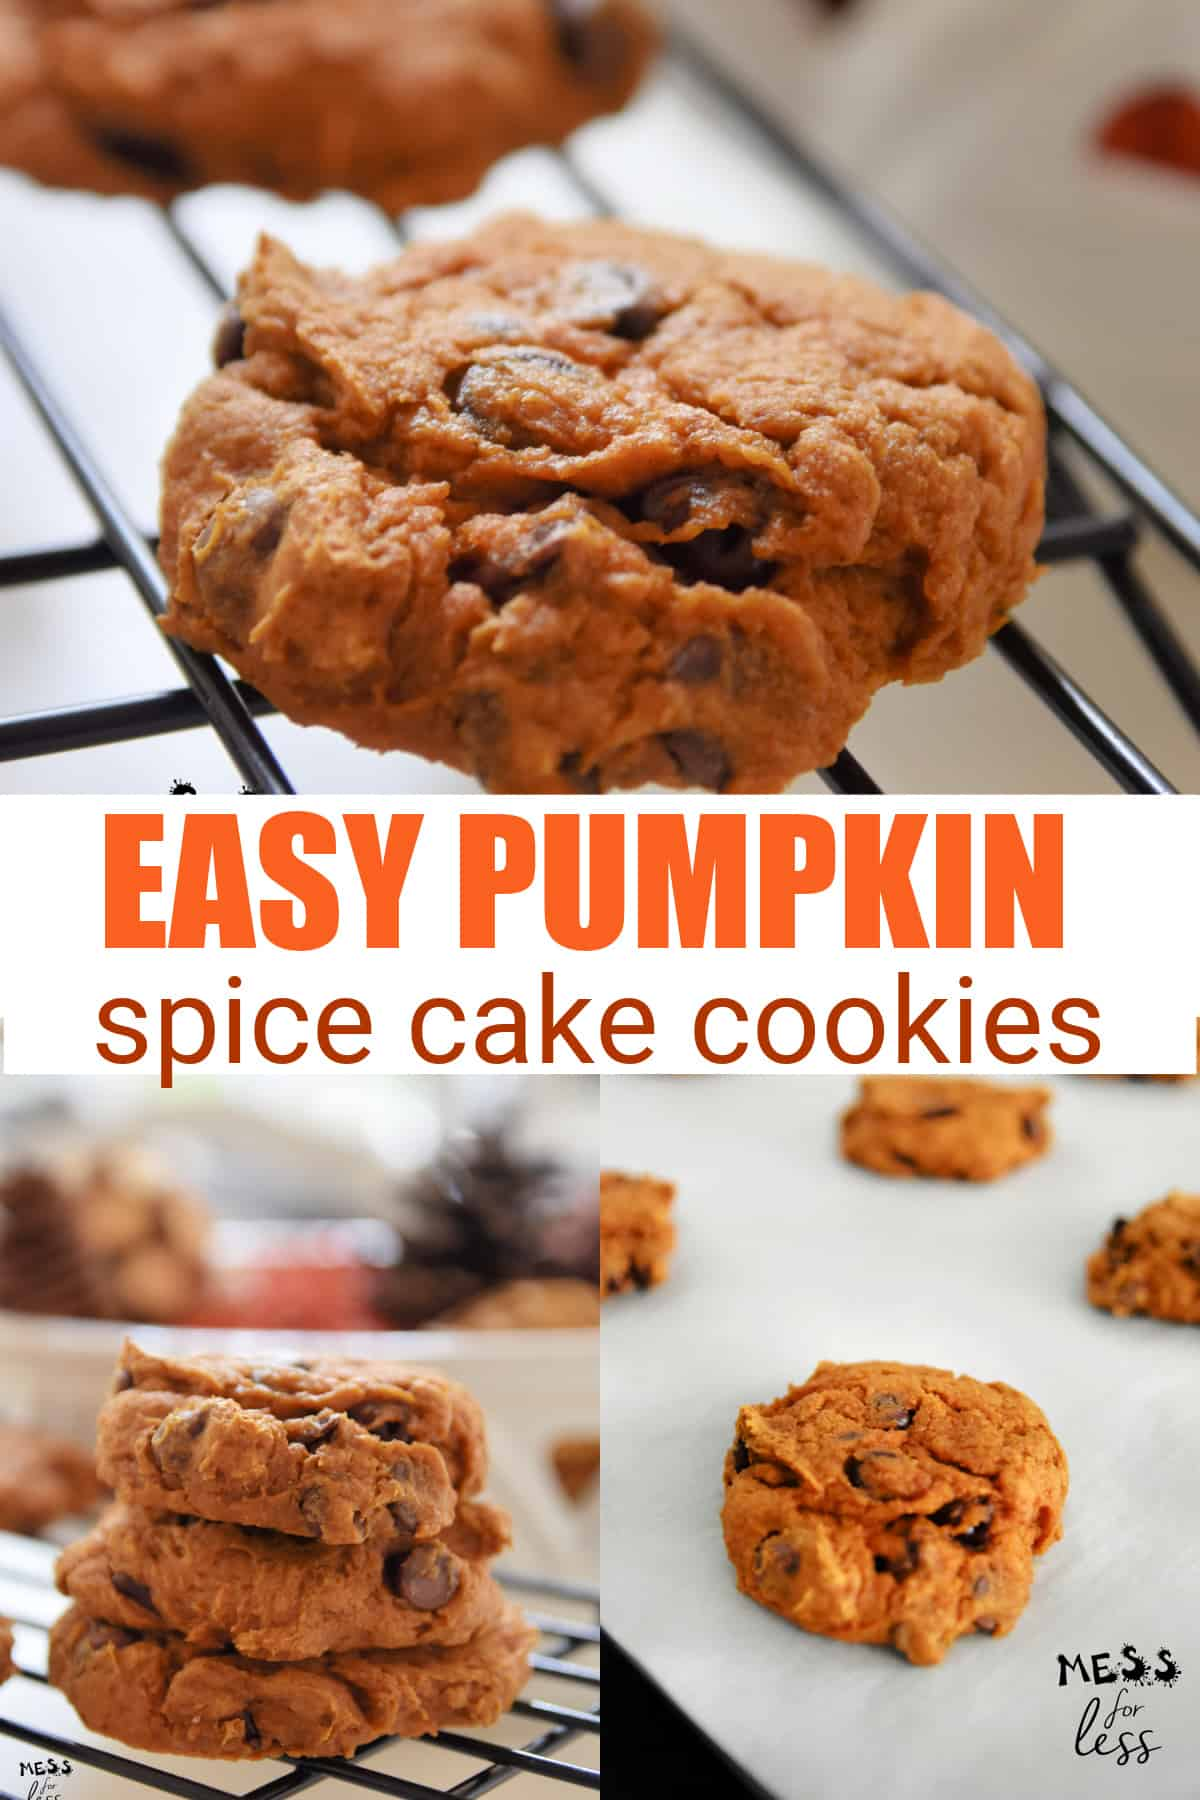 These light and fluffy pumpkin cookies with cake mix are one of our favorite fall flavor combinations.The spice cake mix in this recipe adds a little something extra to the pumpkin cookies and the chocolate chips make them hard to resist!